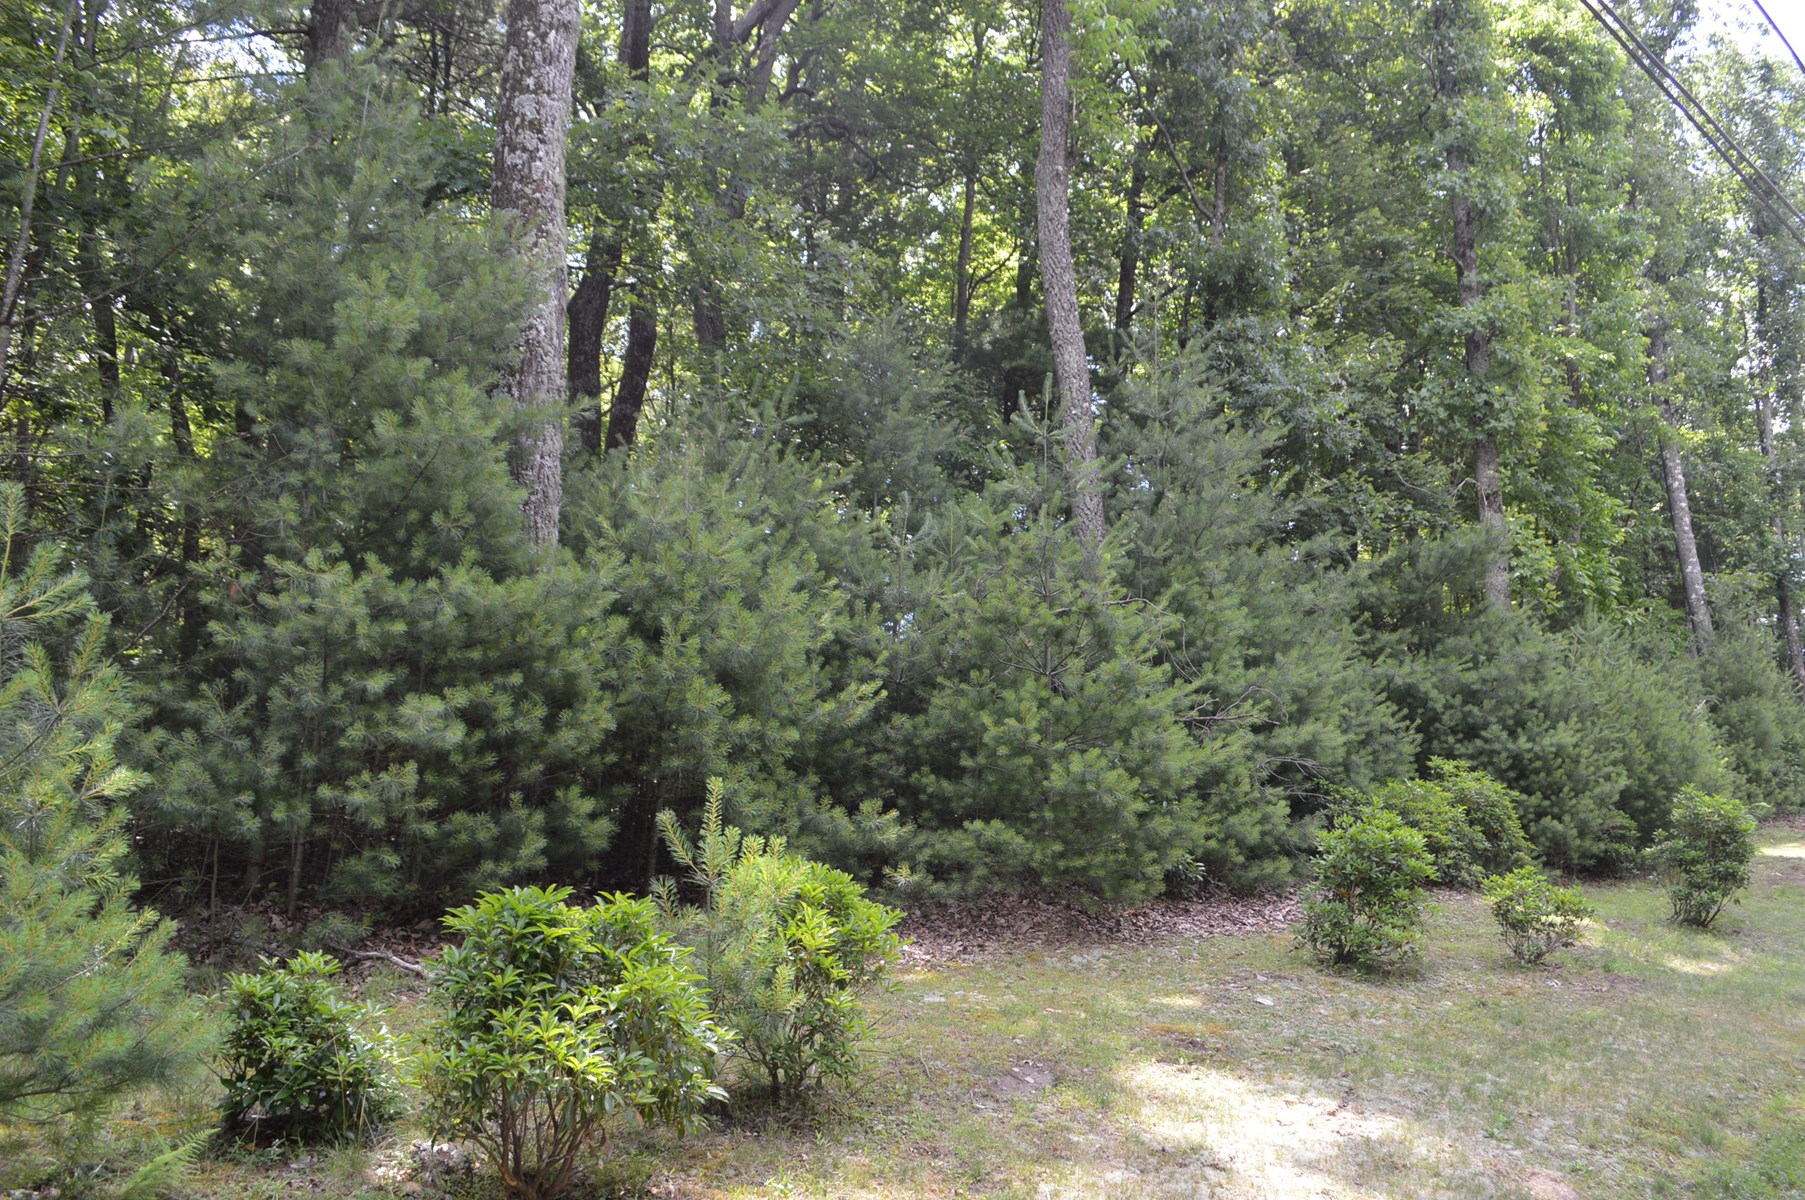 Building Lot for Sale in High Meadows Roaring Gap NC